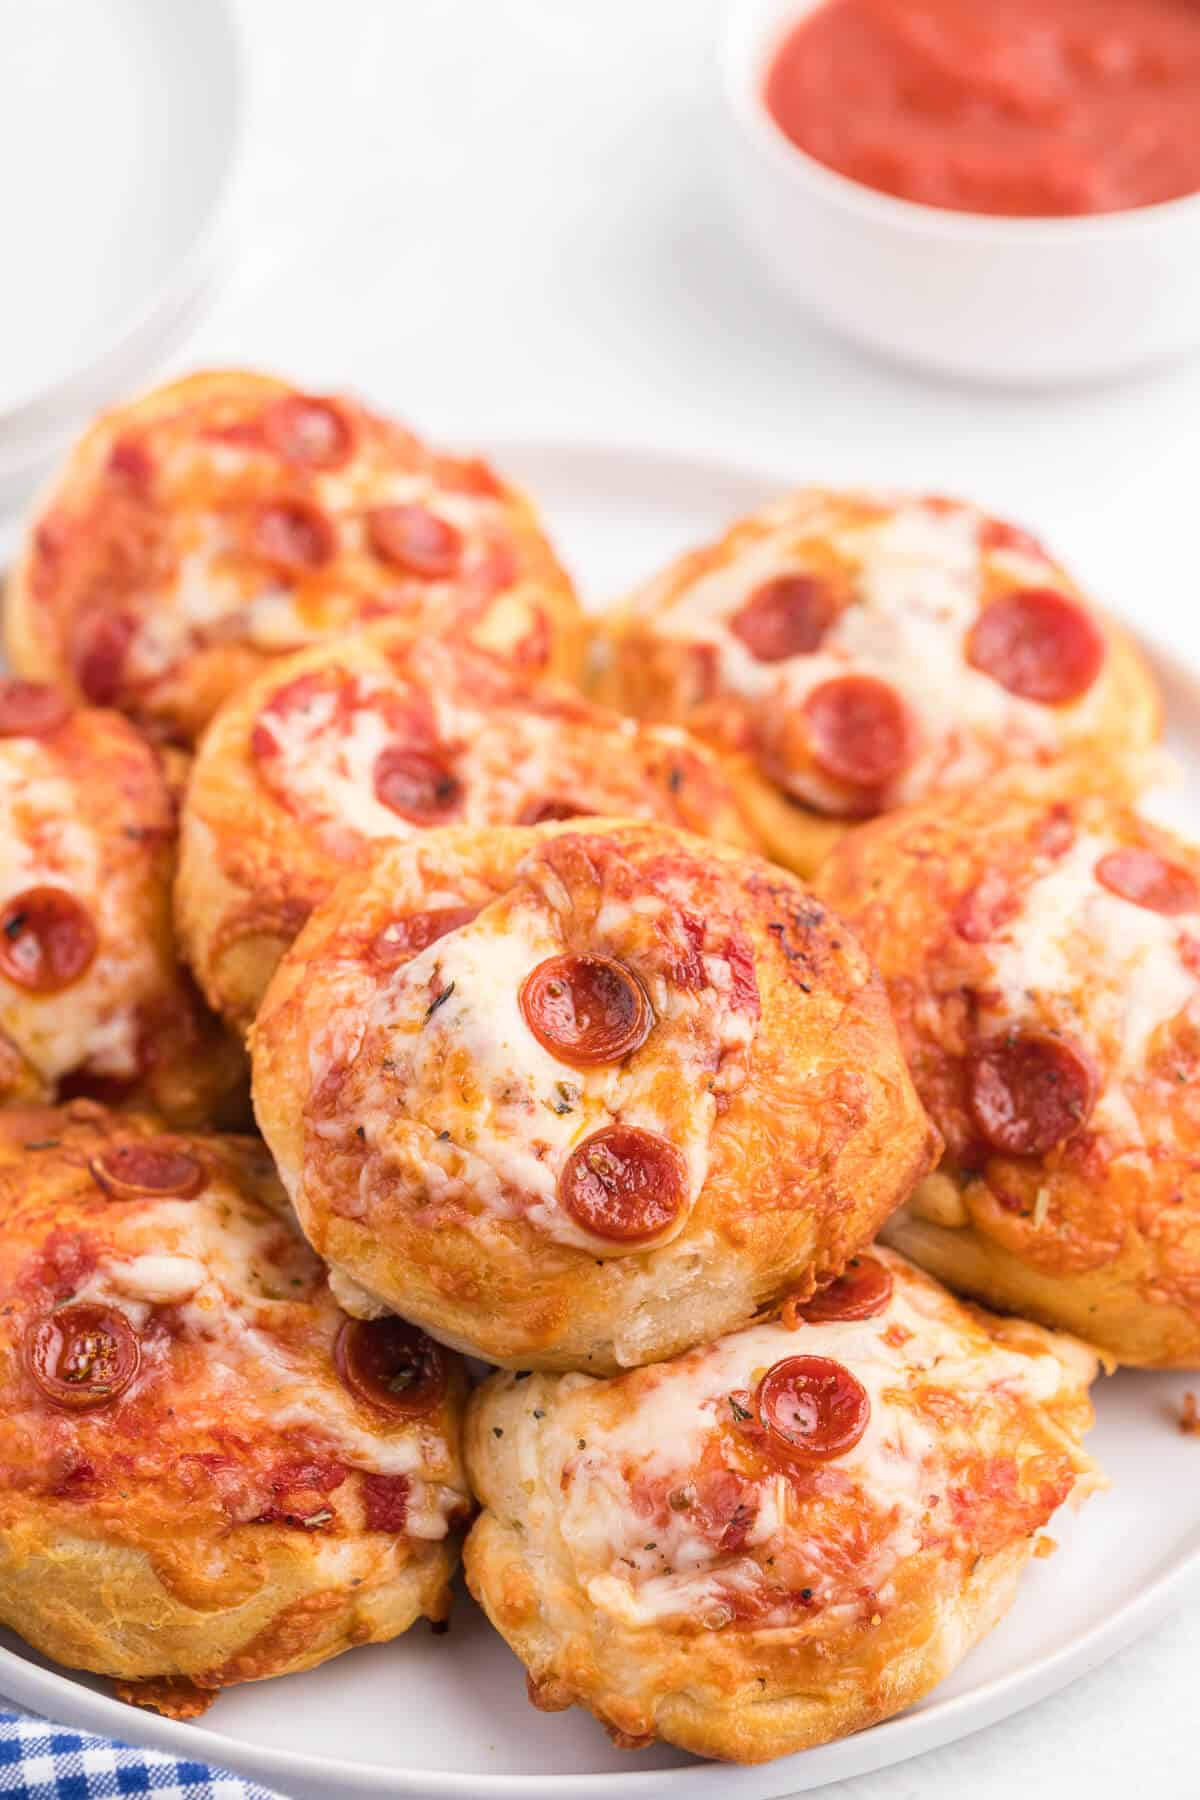 Air Fryer Pizza Buns - This simple recipe is perfect for snacking, an appetizer or for your kids' school lunch. Air fried to golden perfection, these savory buns are easy to make with refrigerated dough, pizza sauce, mozzarella cheese and pepperoni.